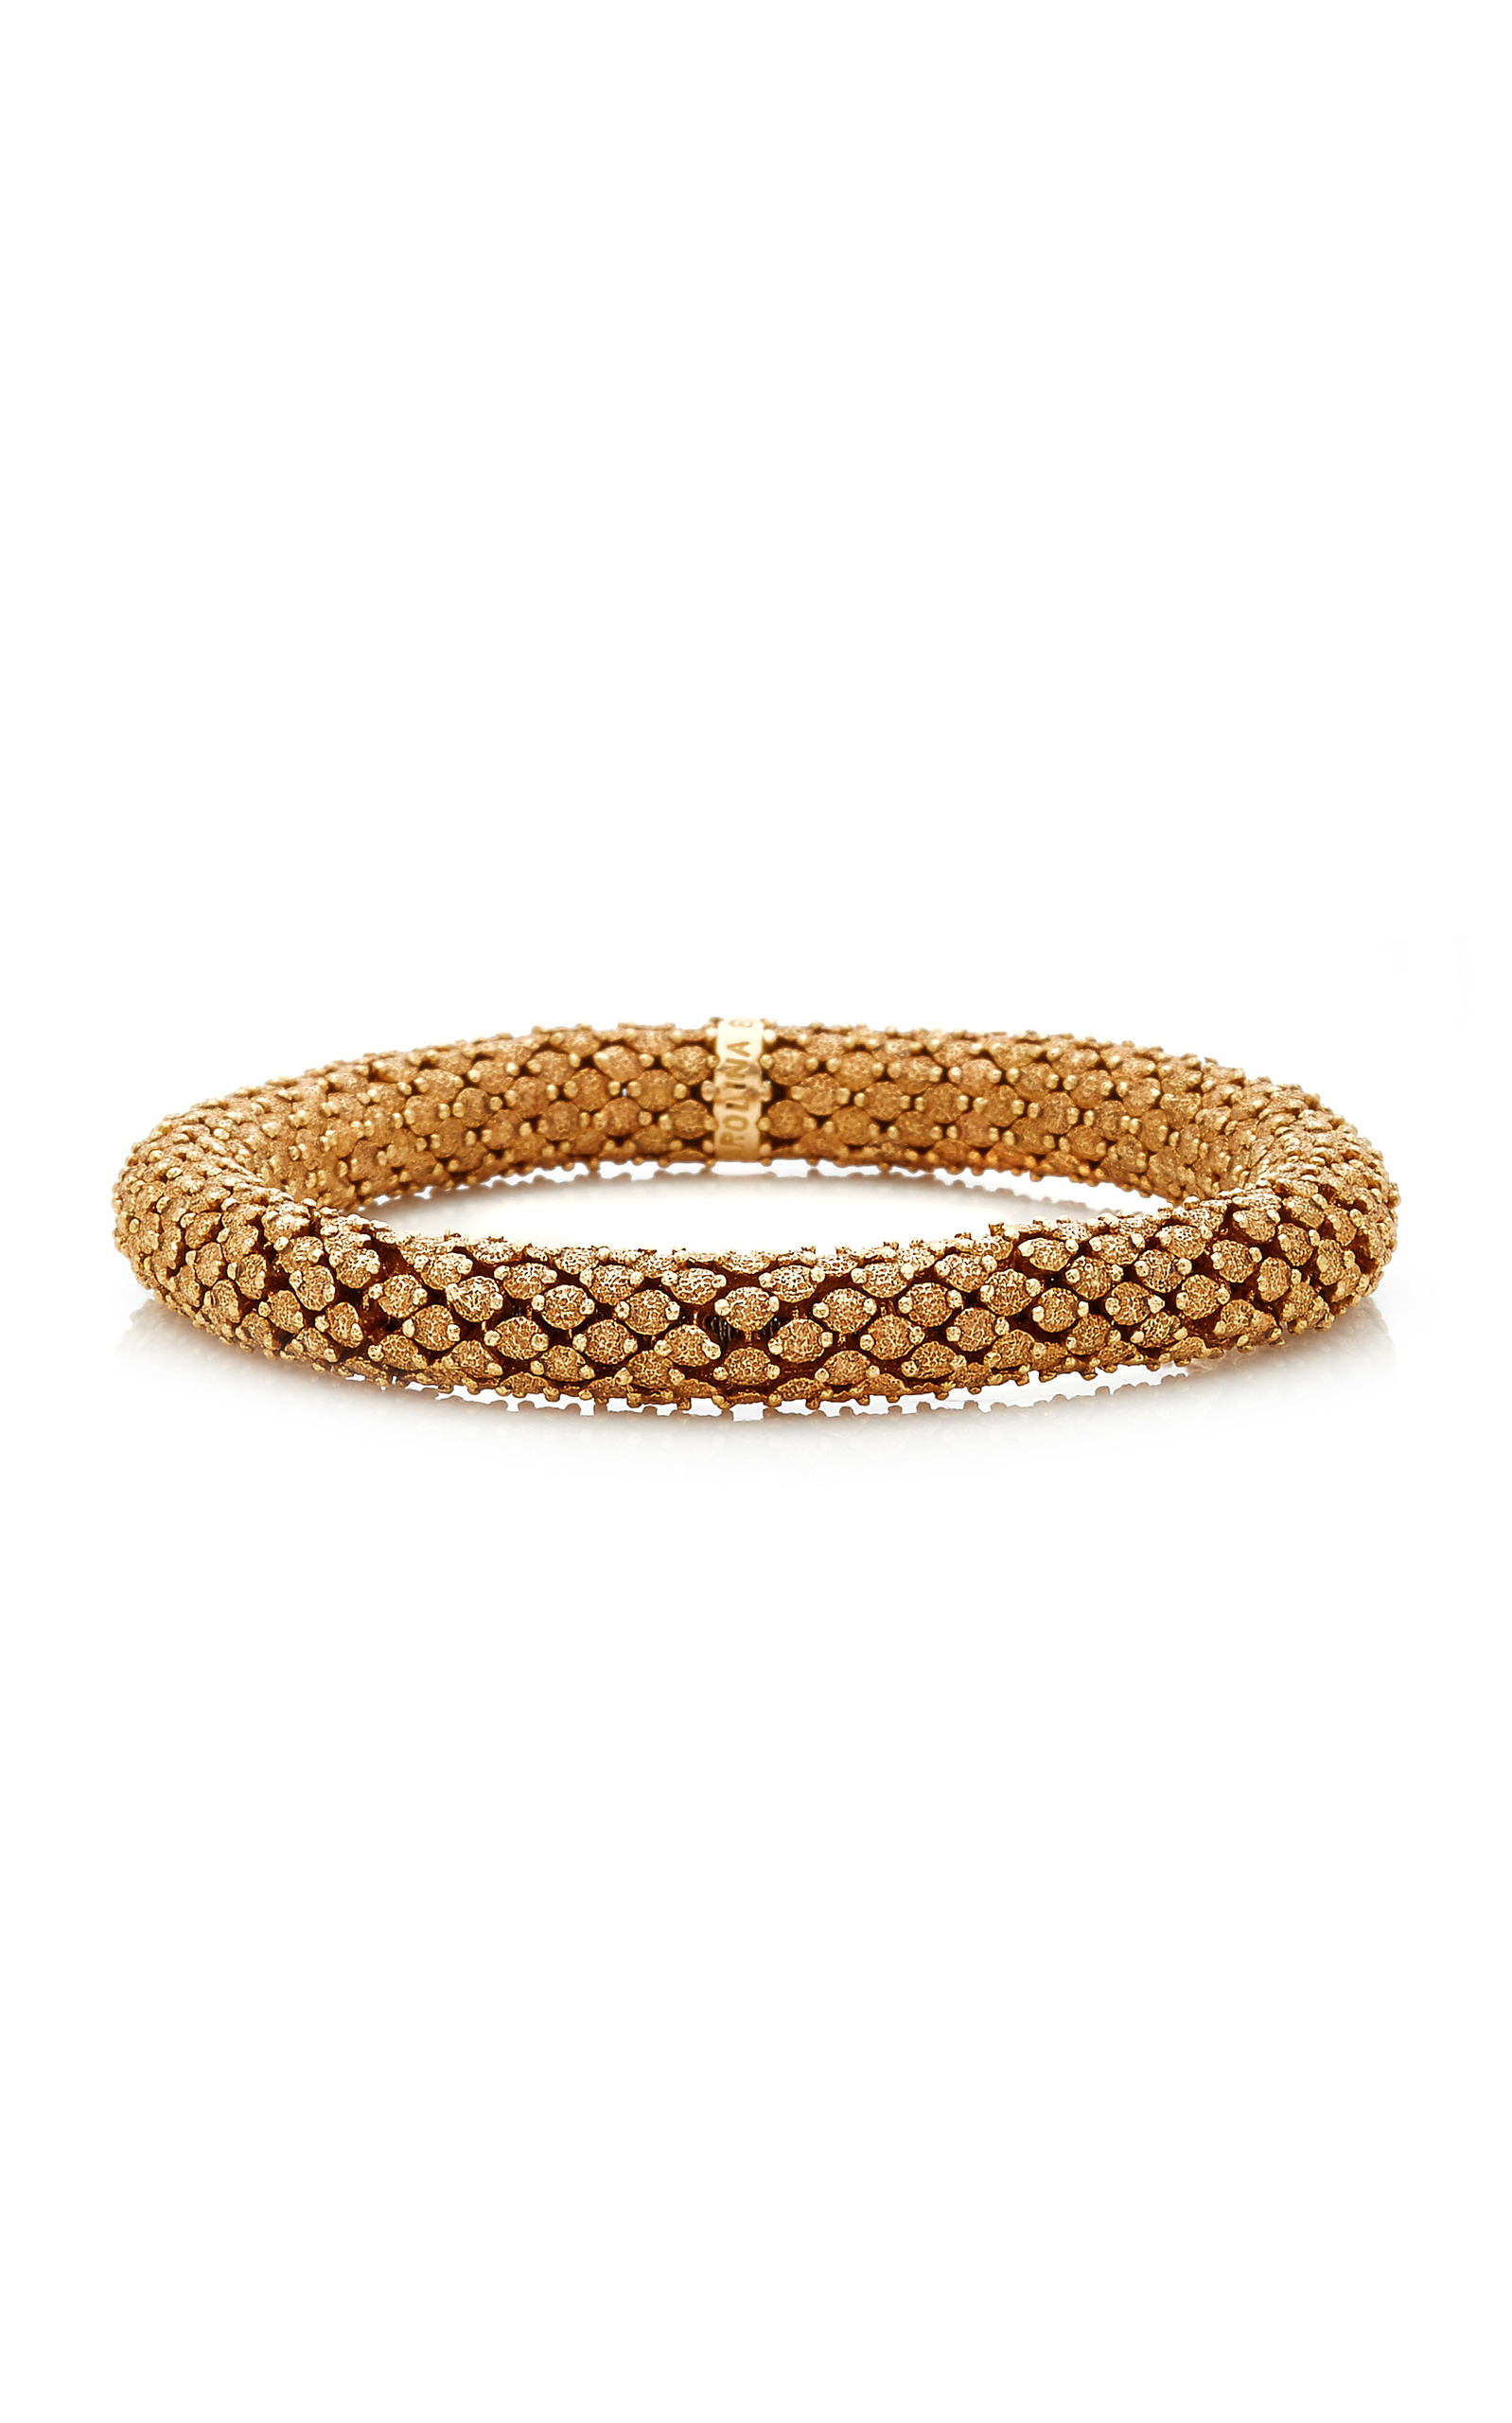 bracelet essential tbr brac progressive loilj mint braided thick diffuser products oil